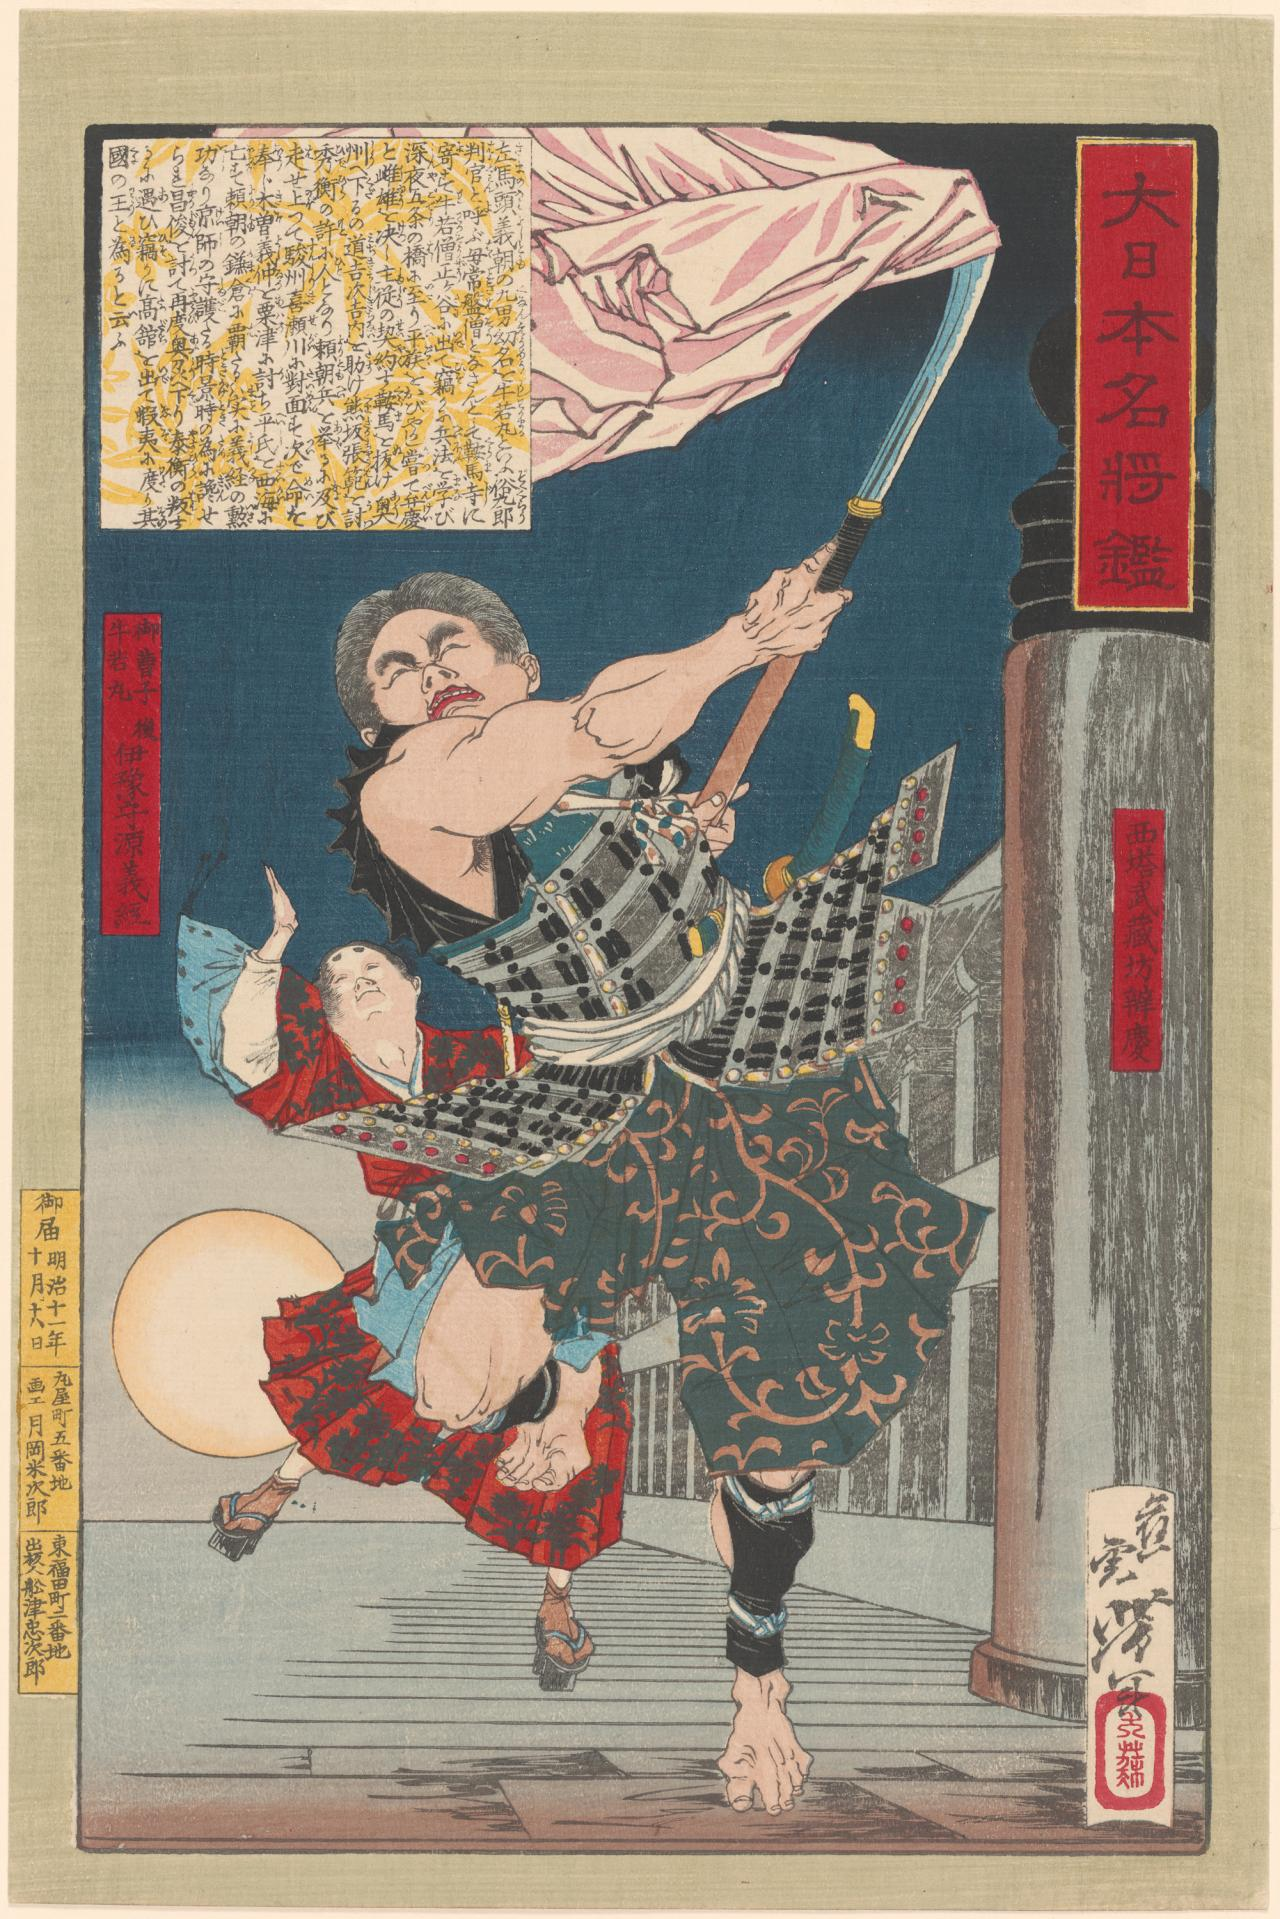 Musashibo Benkei battling with young Ushiwaka on Gojo bridge